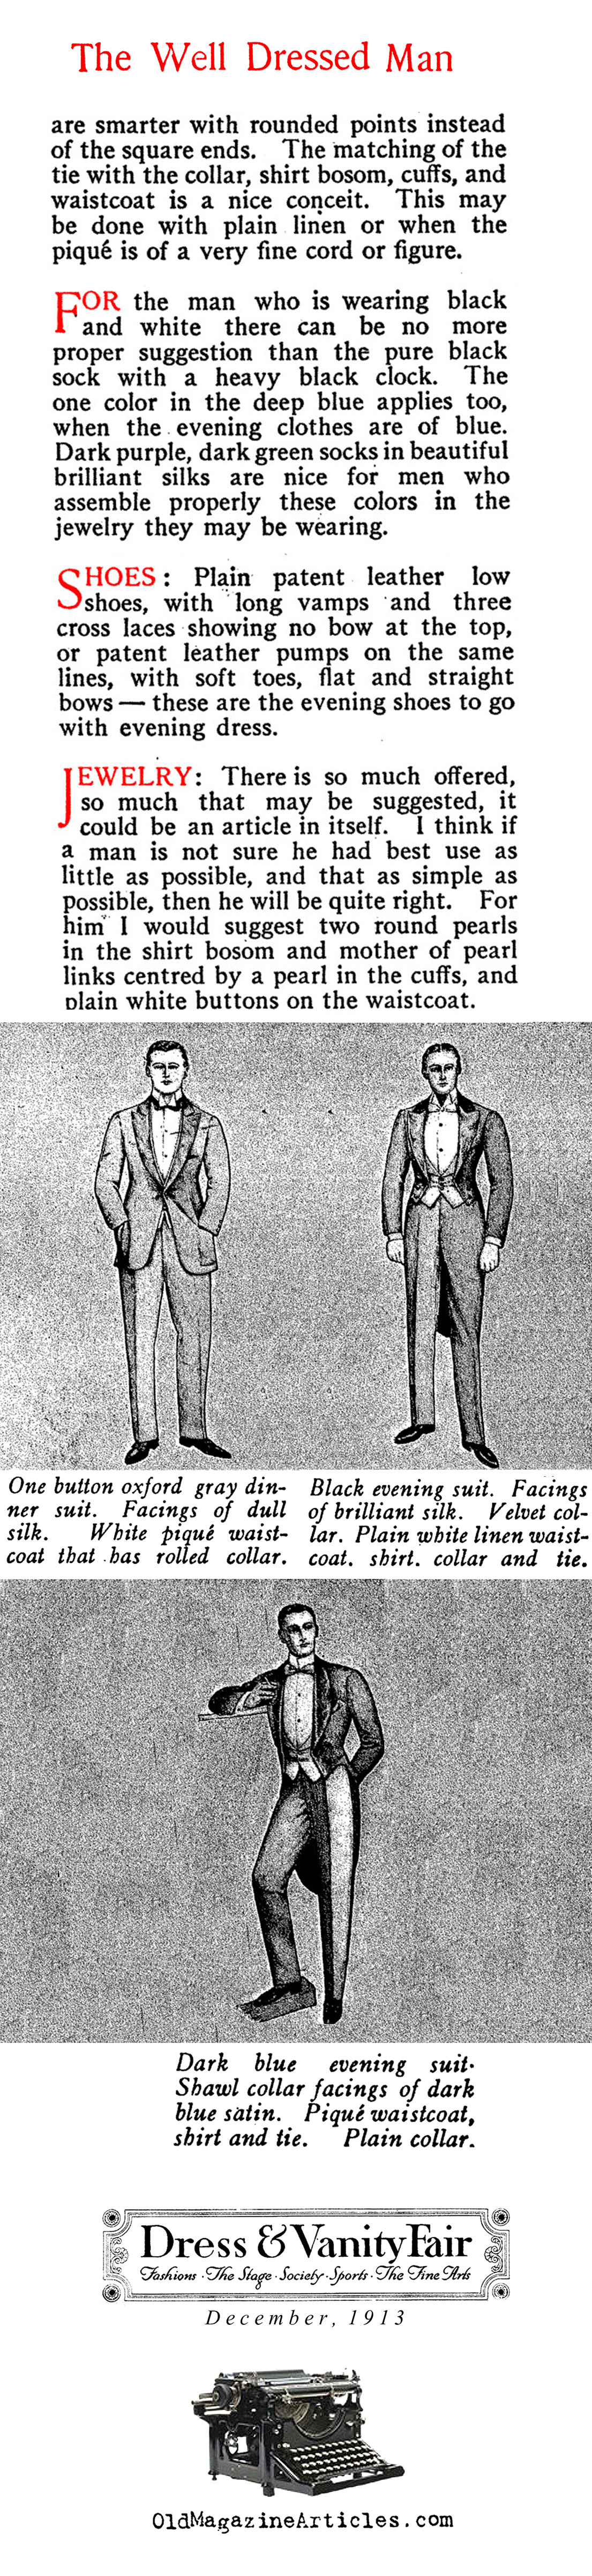 Sensible Rules for Men's Evening Clothes  (Vanity Fair Magazine, 1913)